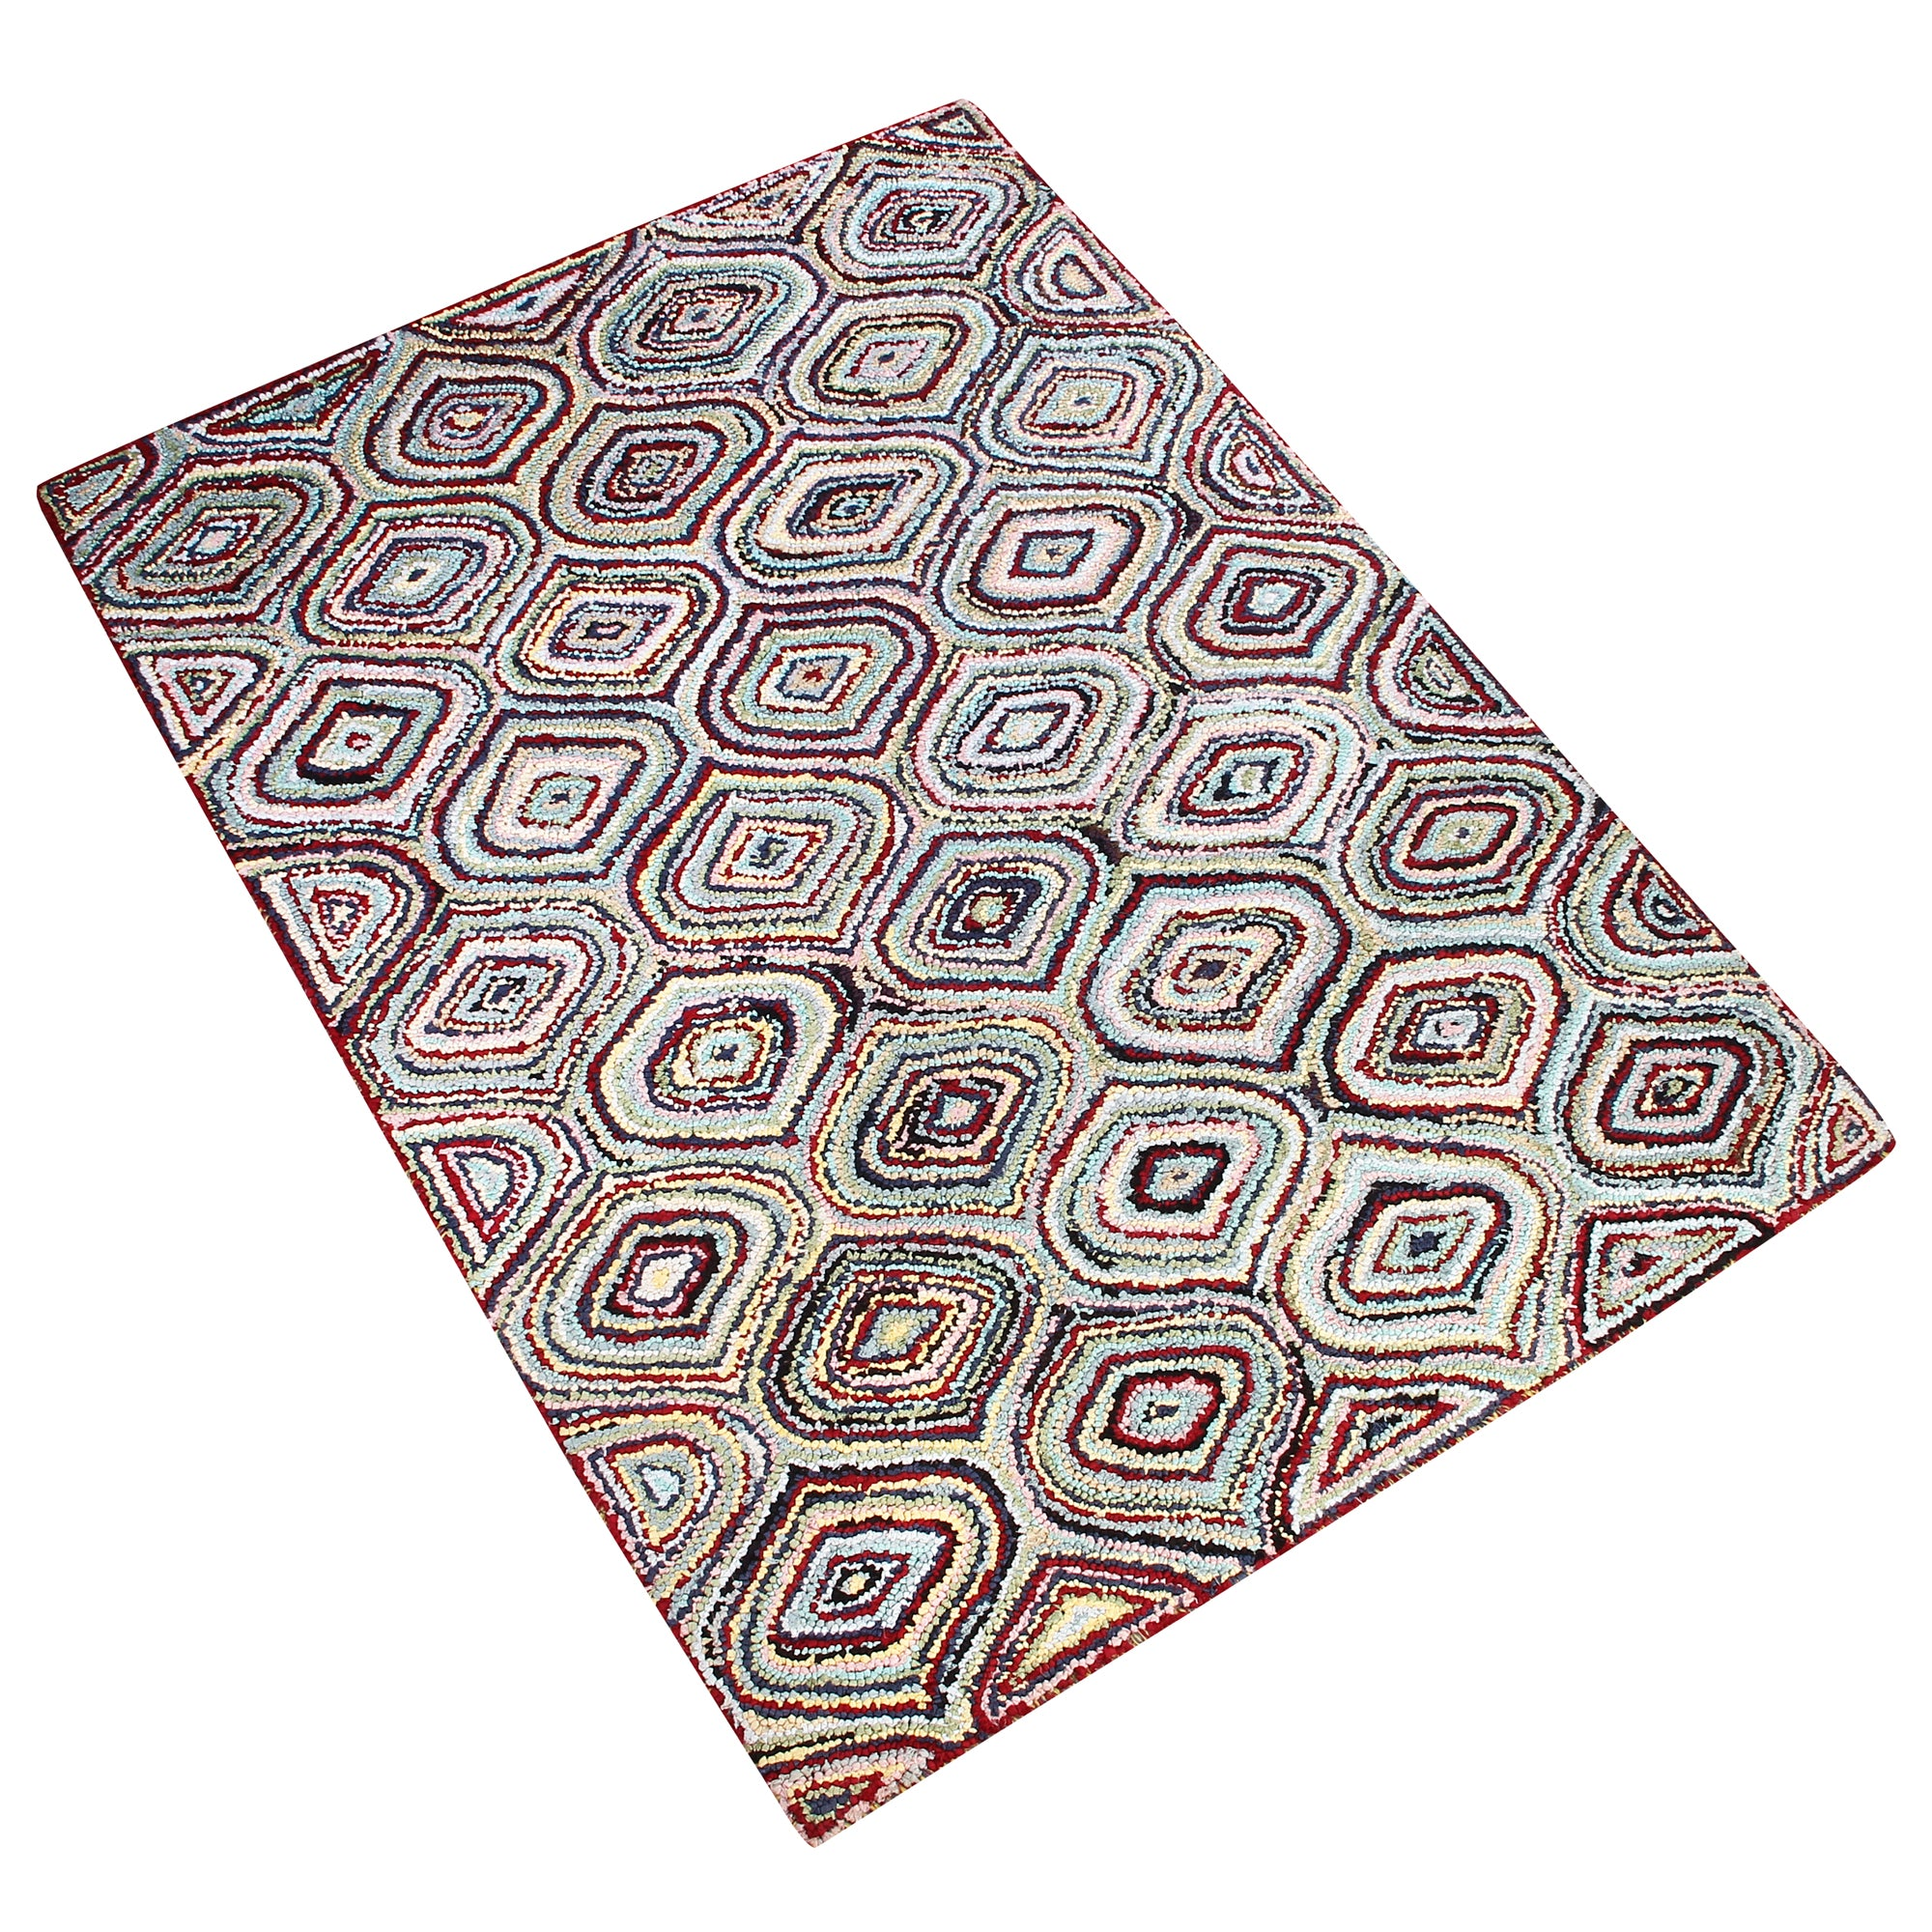 MULTI COLOR GEOMETRIC HAND TUFTED RUG